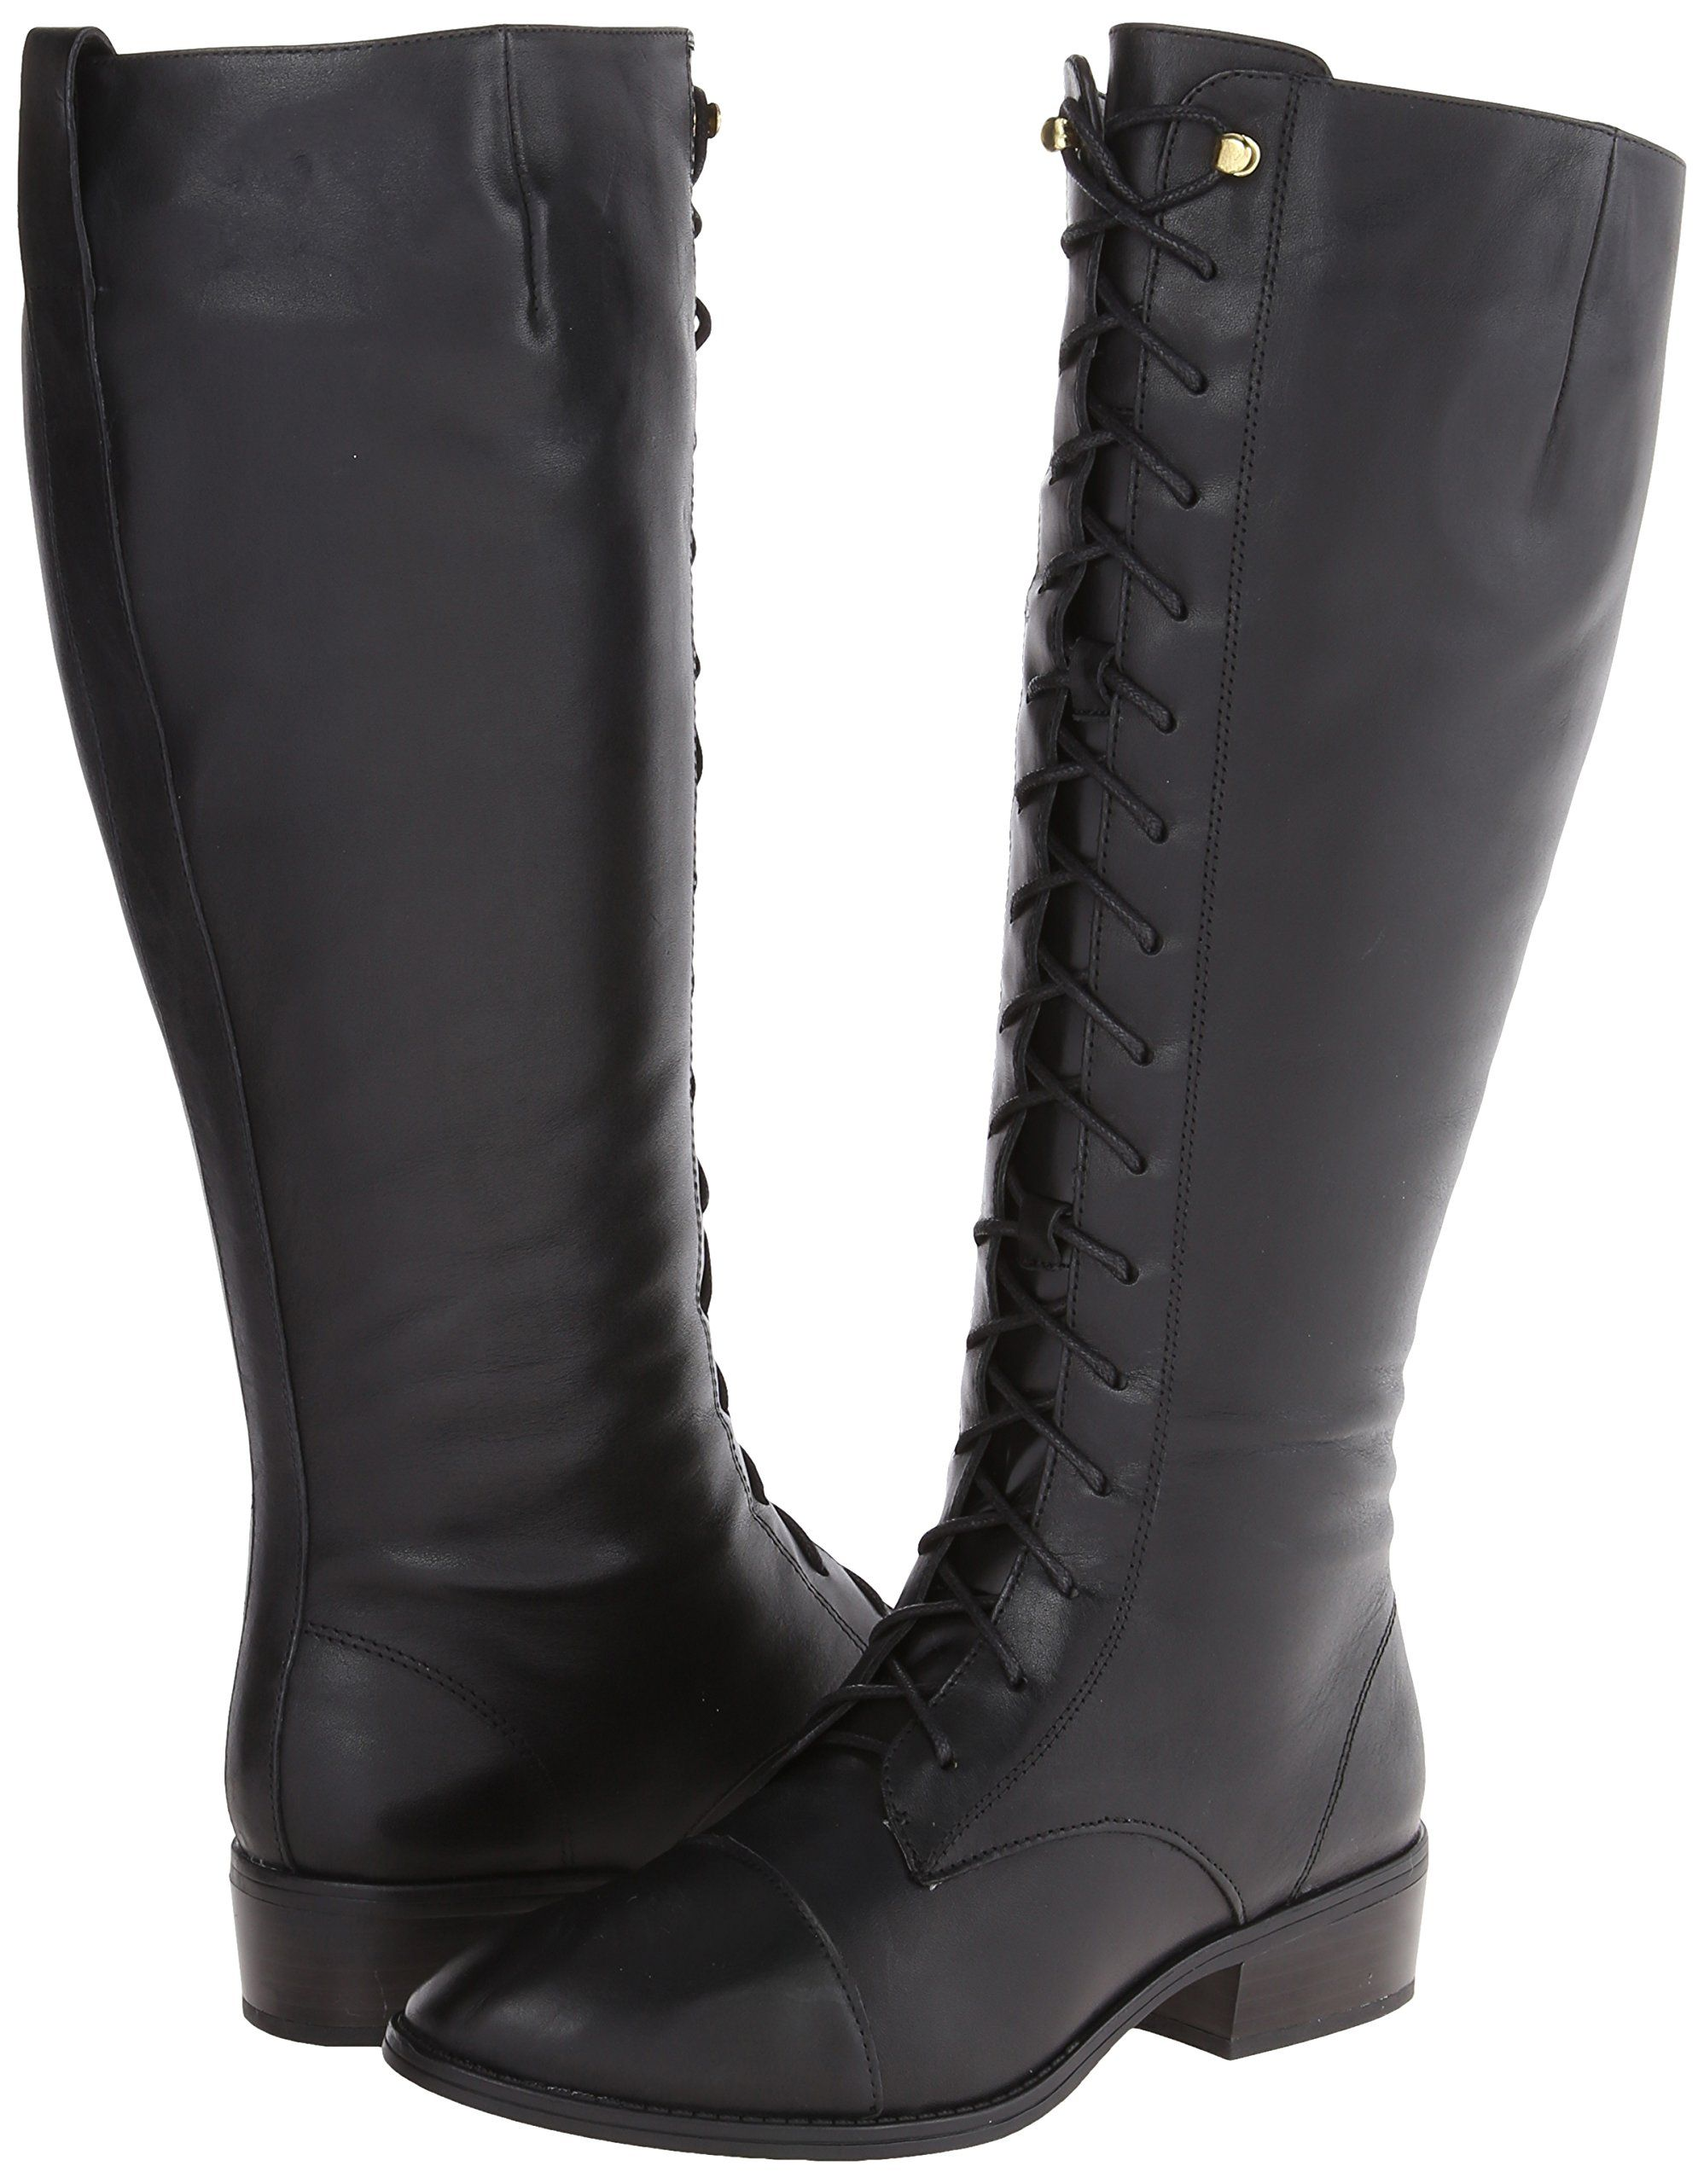 Amazon.com: Lauren Ralph Lauren Women's Martina Wide Calf Riding Boot: Shoes